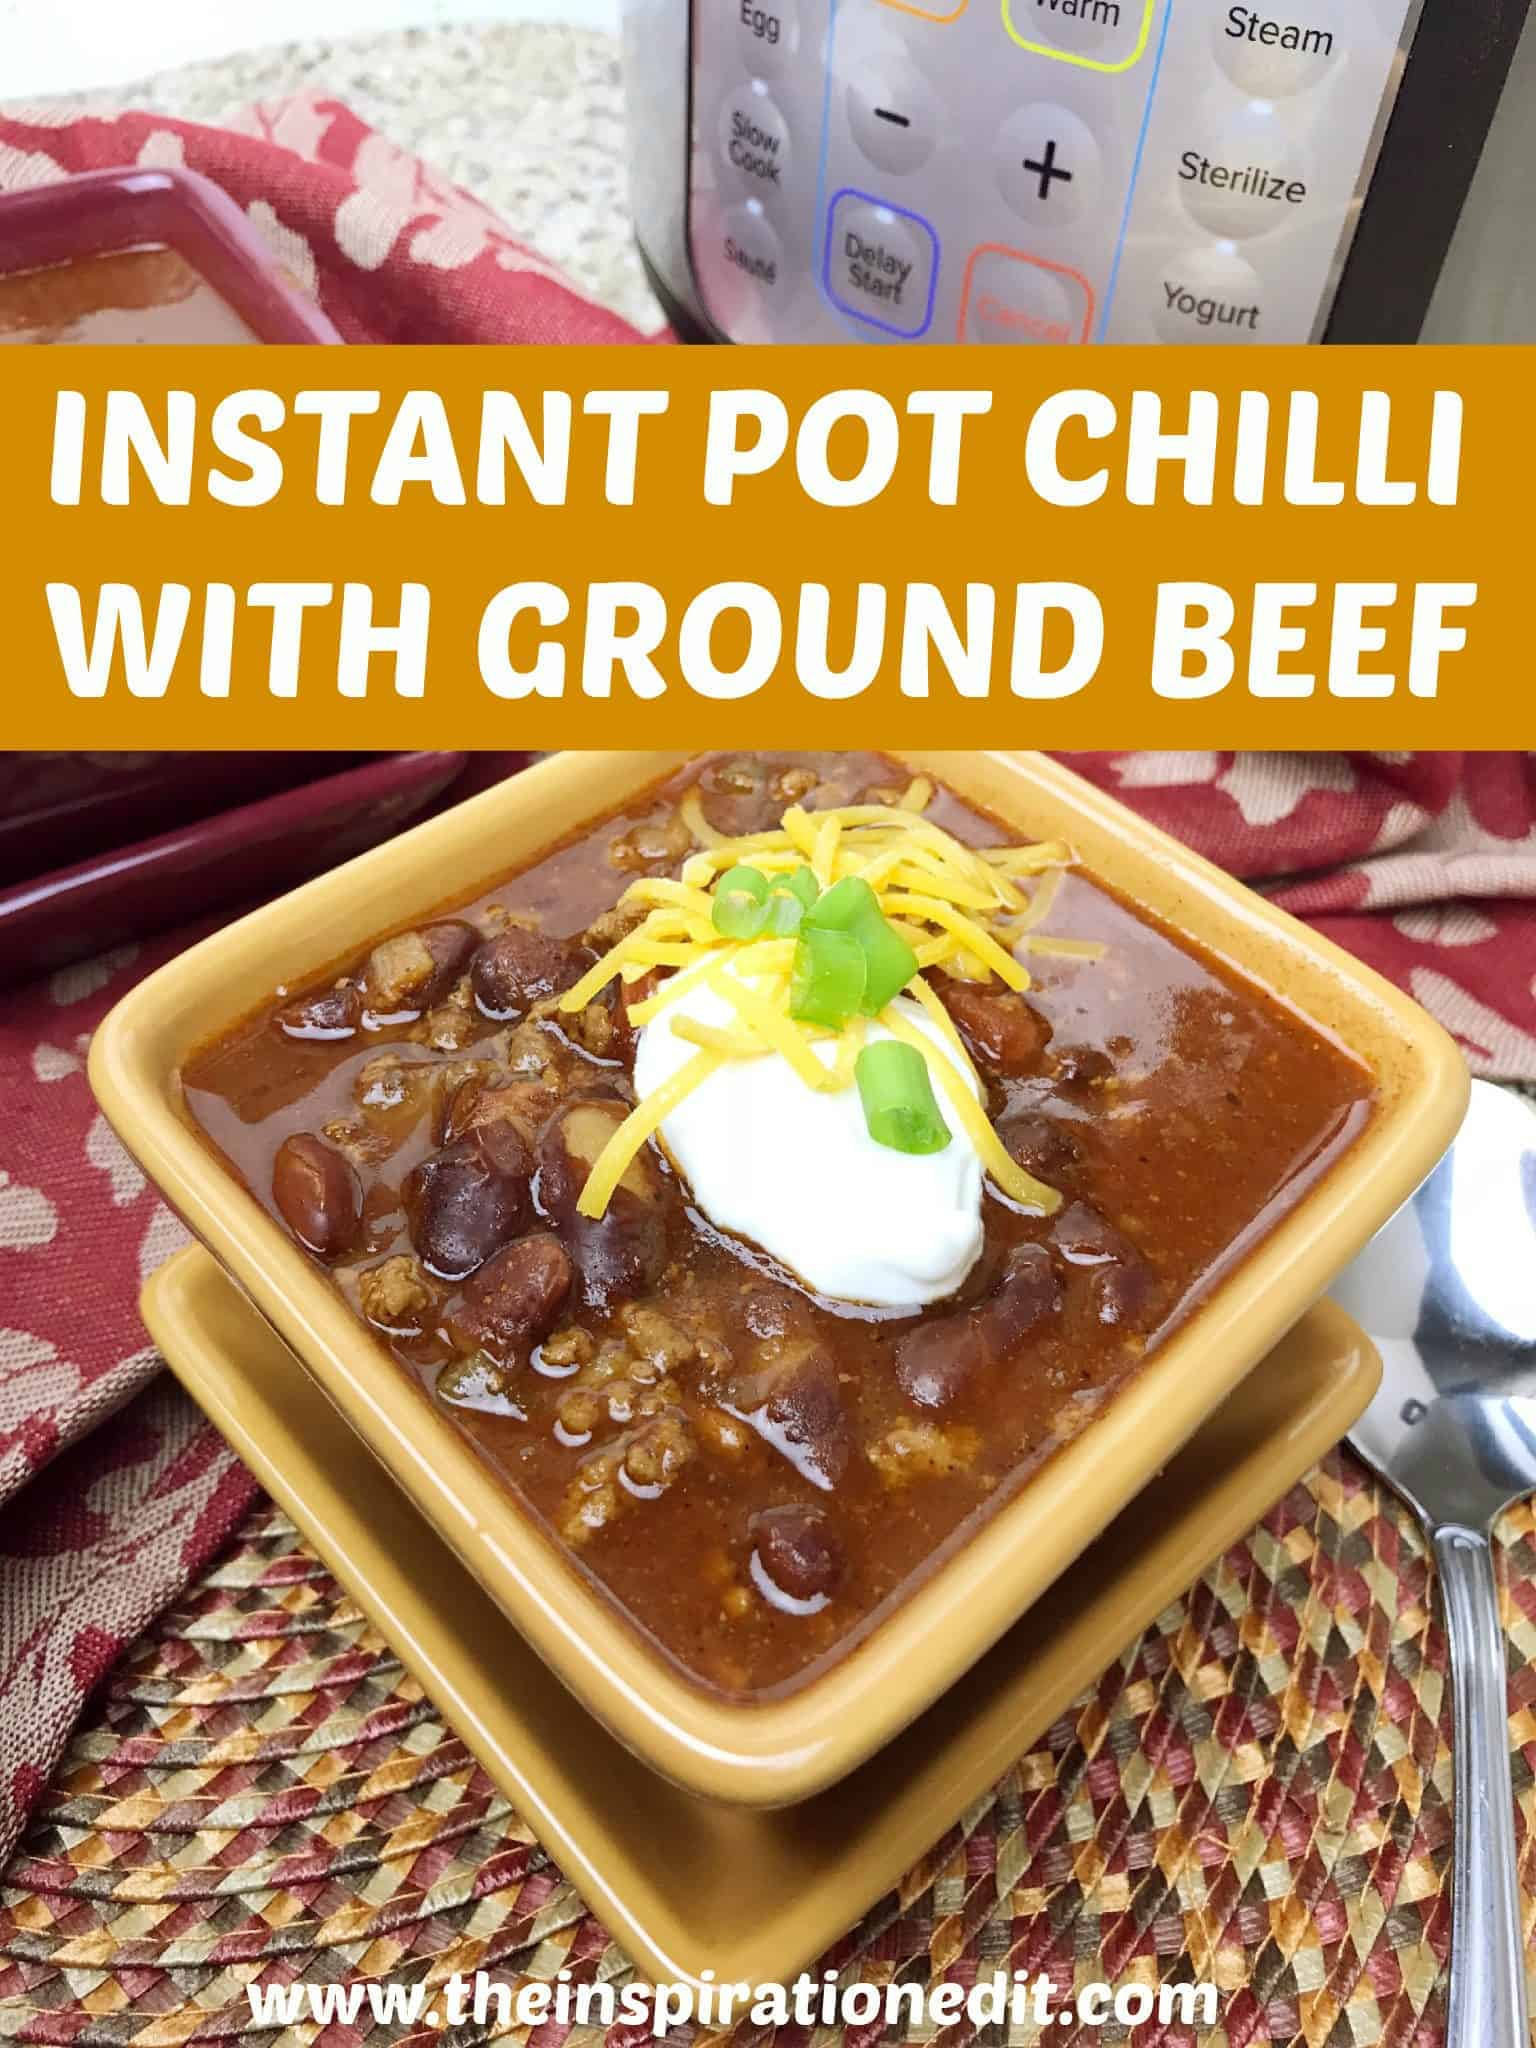 This Instant Pot Chili recipe will be a hit in your house!